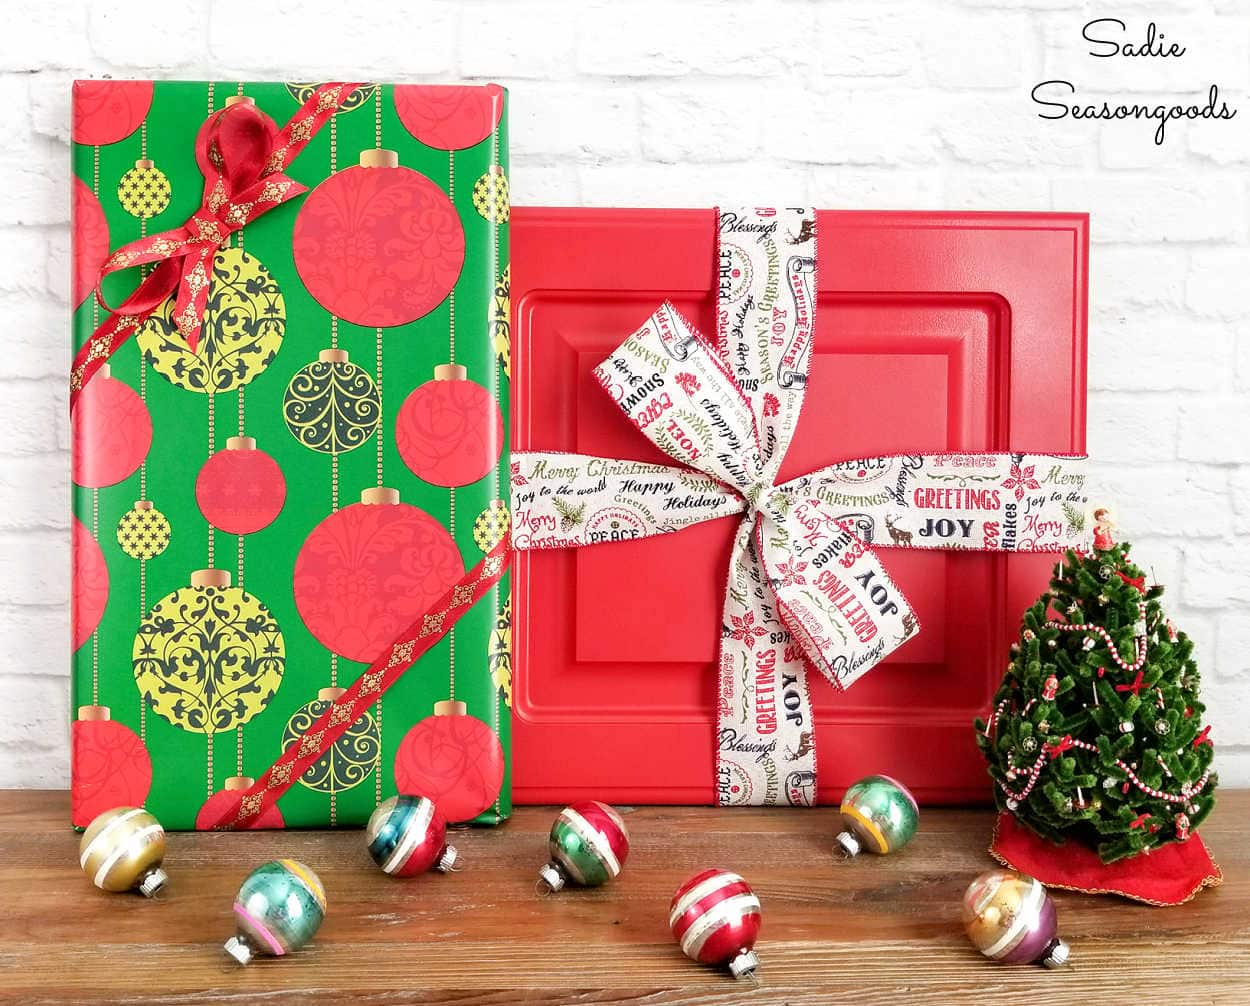 cabinet doors as decorative gifts for a christmas mantel